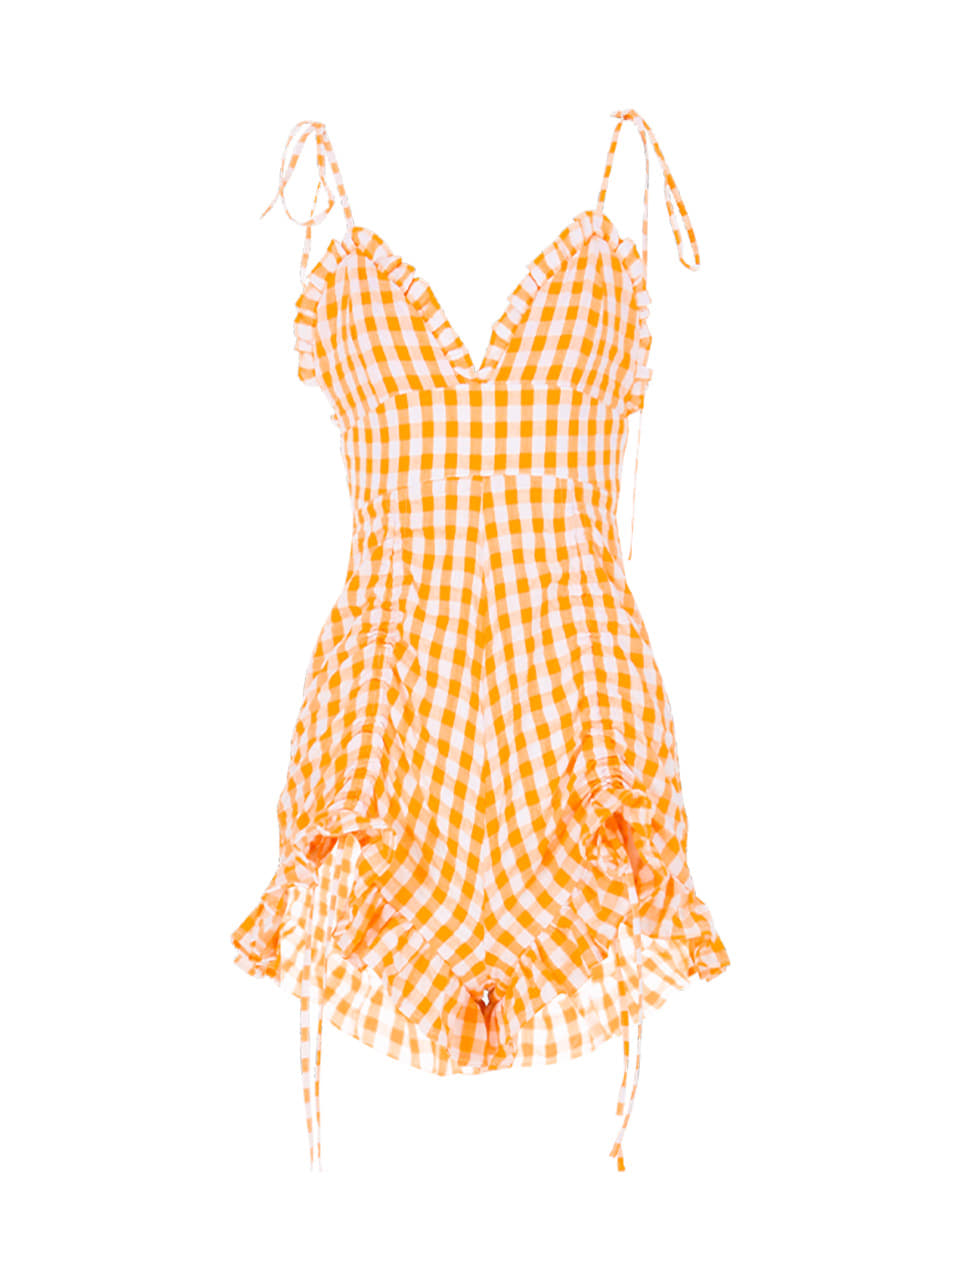 GUKASunny Orange Short Jumpsuit